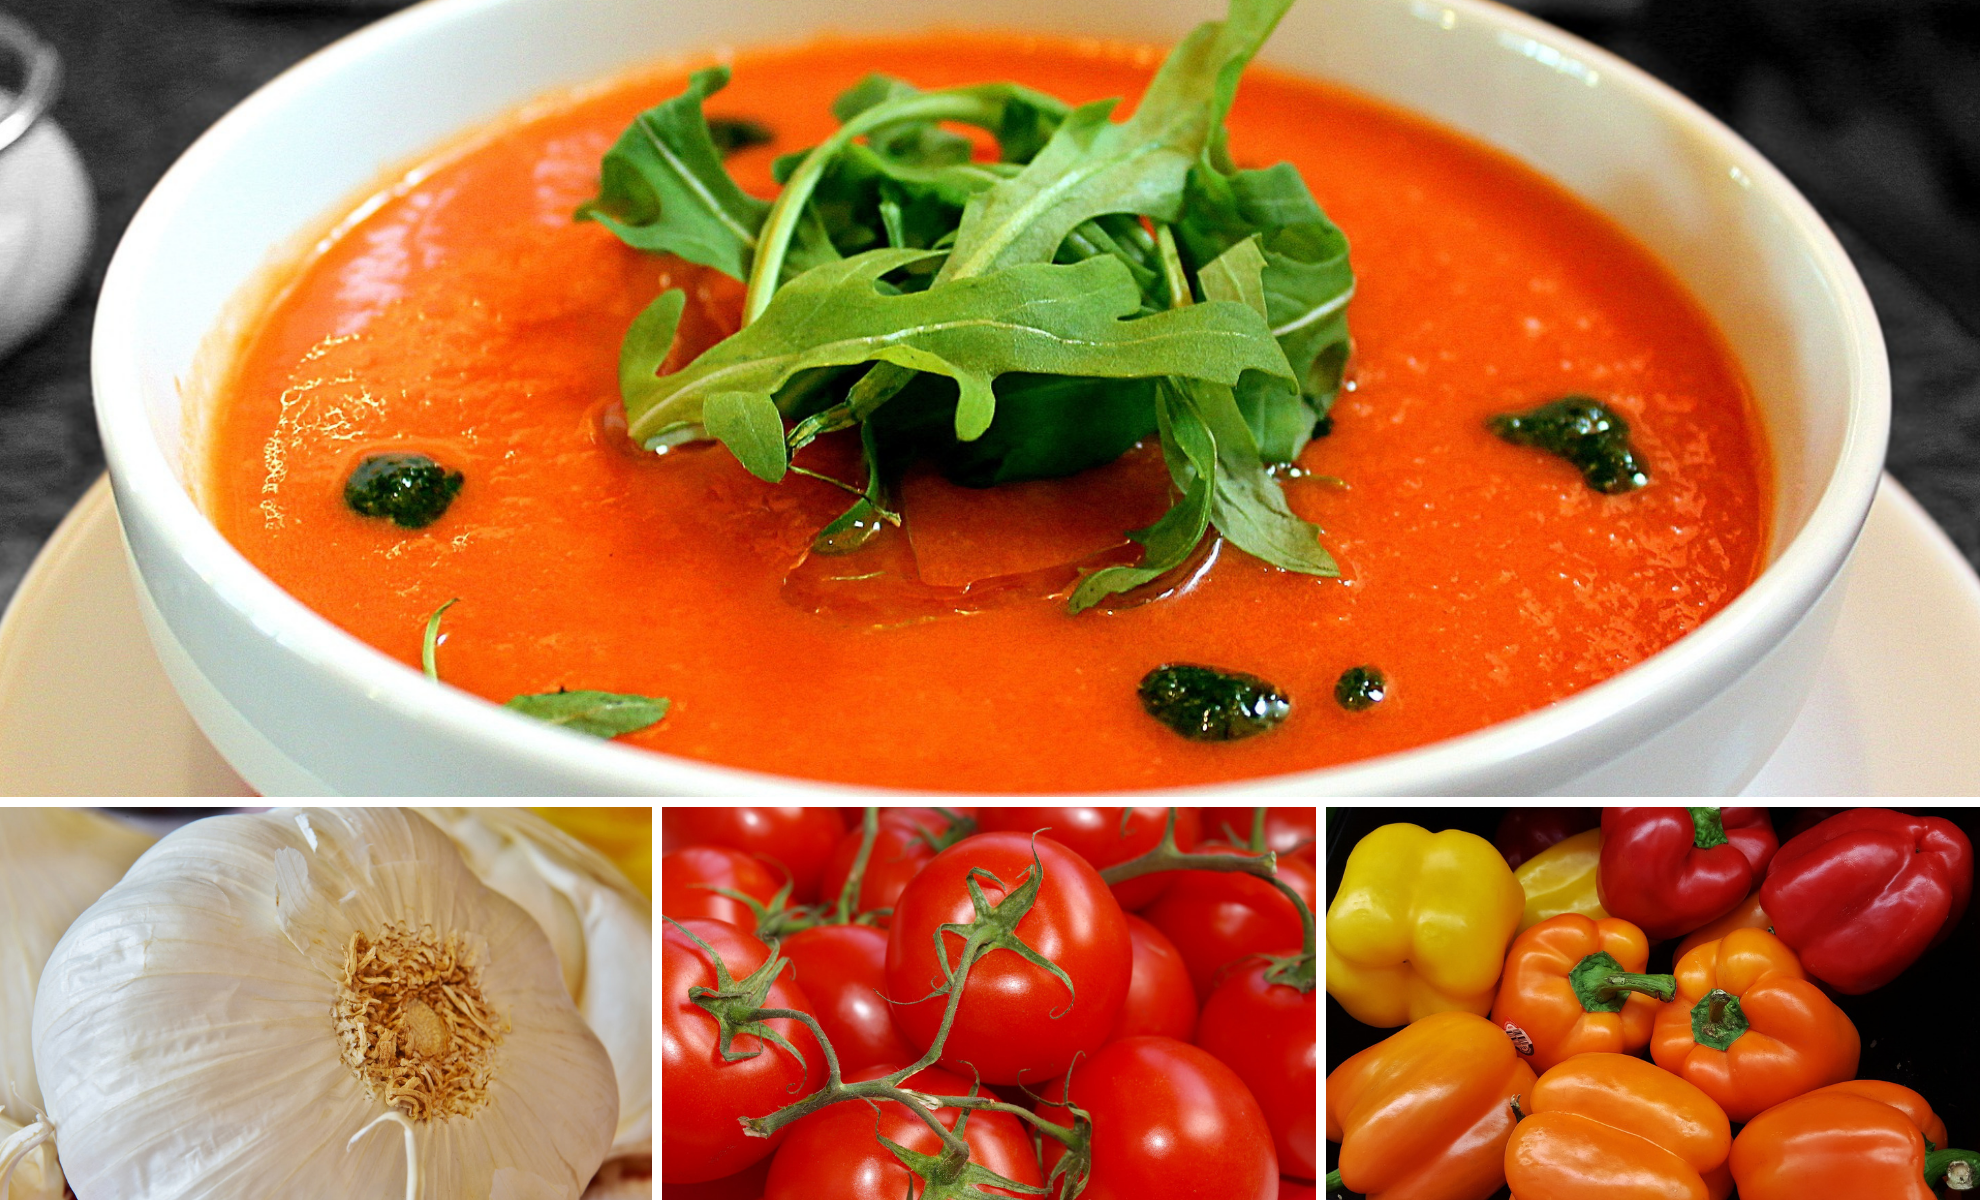 Delicious Gazpacho. Make-ahead Cold Summer Soup